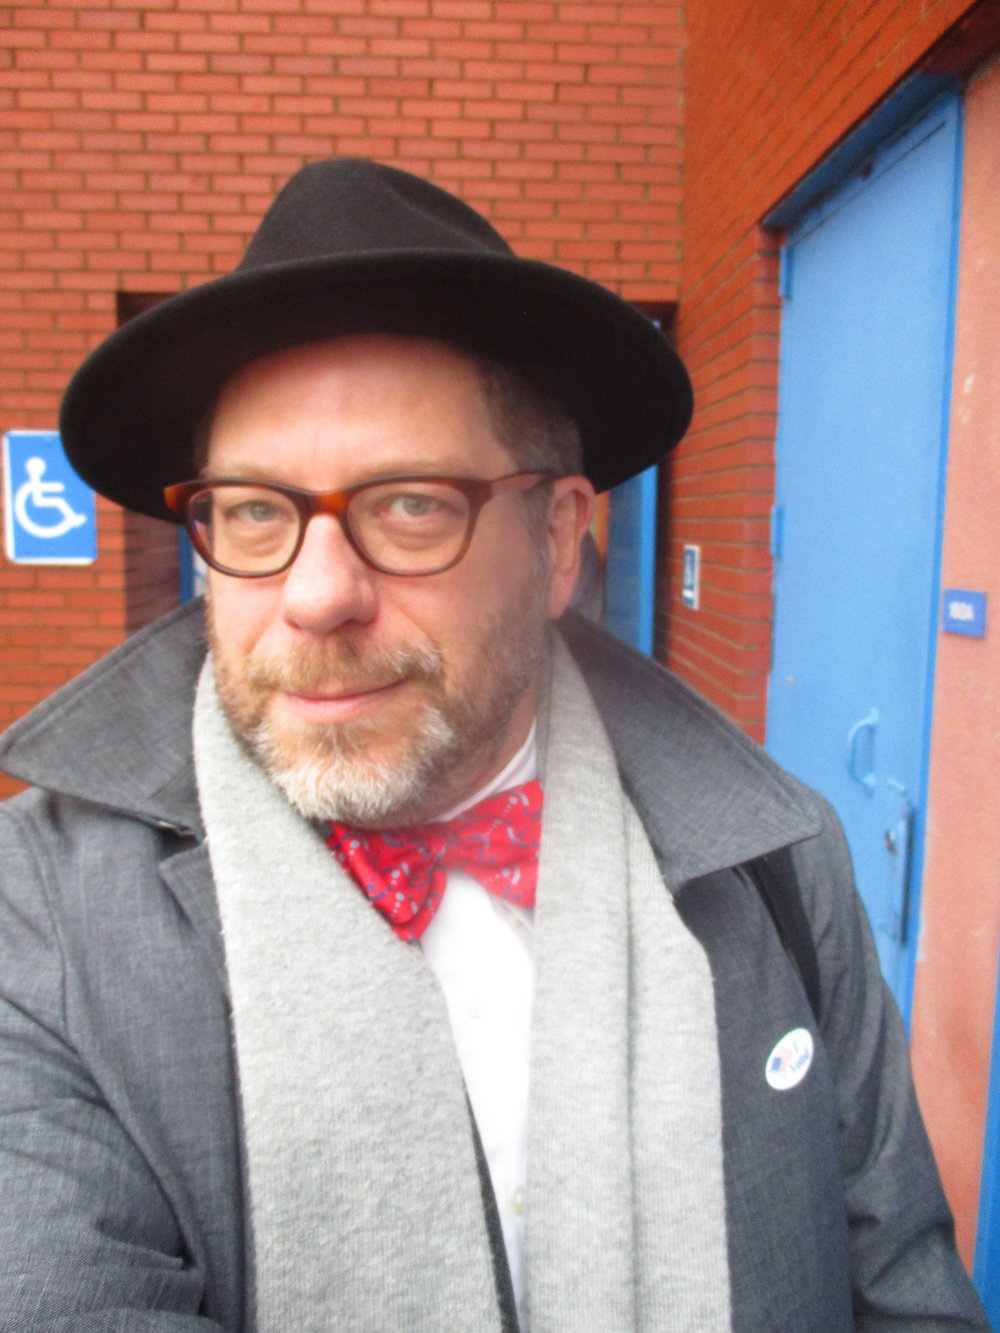 Etiquetteer's Election Day ensemble included a bow tie in the national colors.